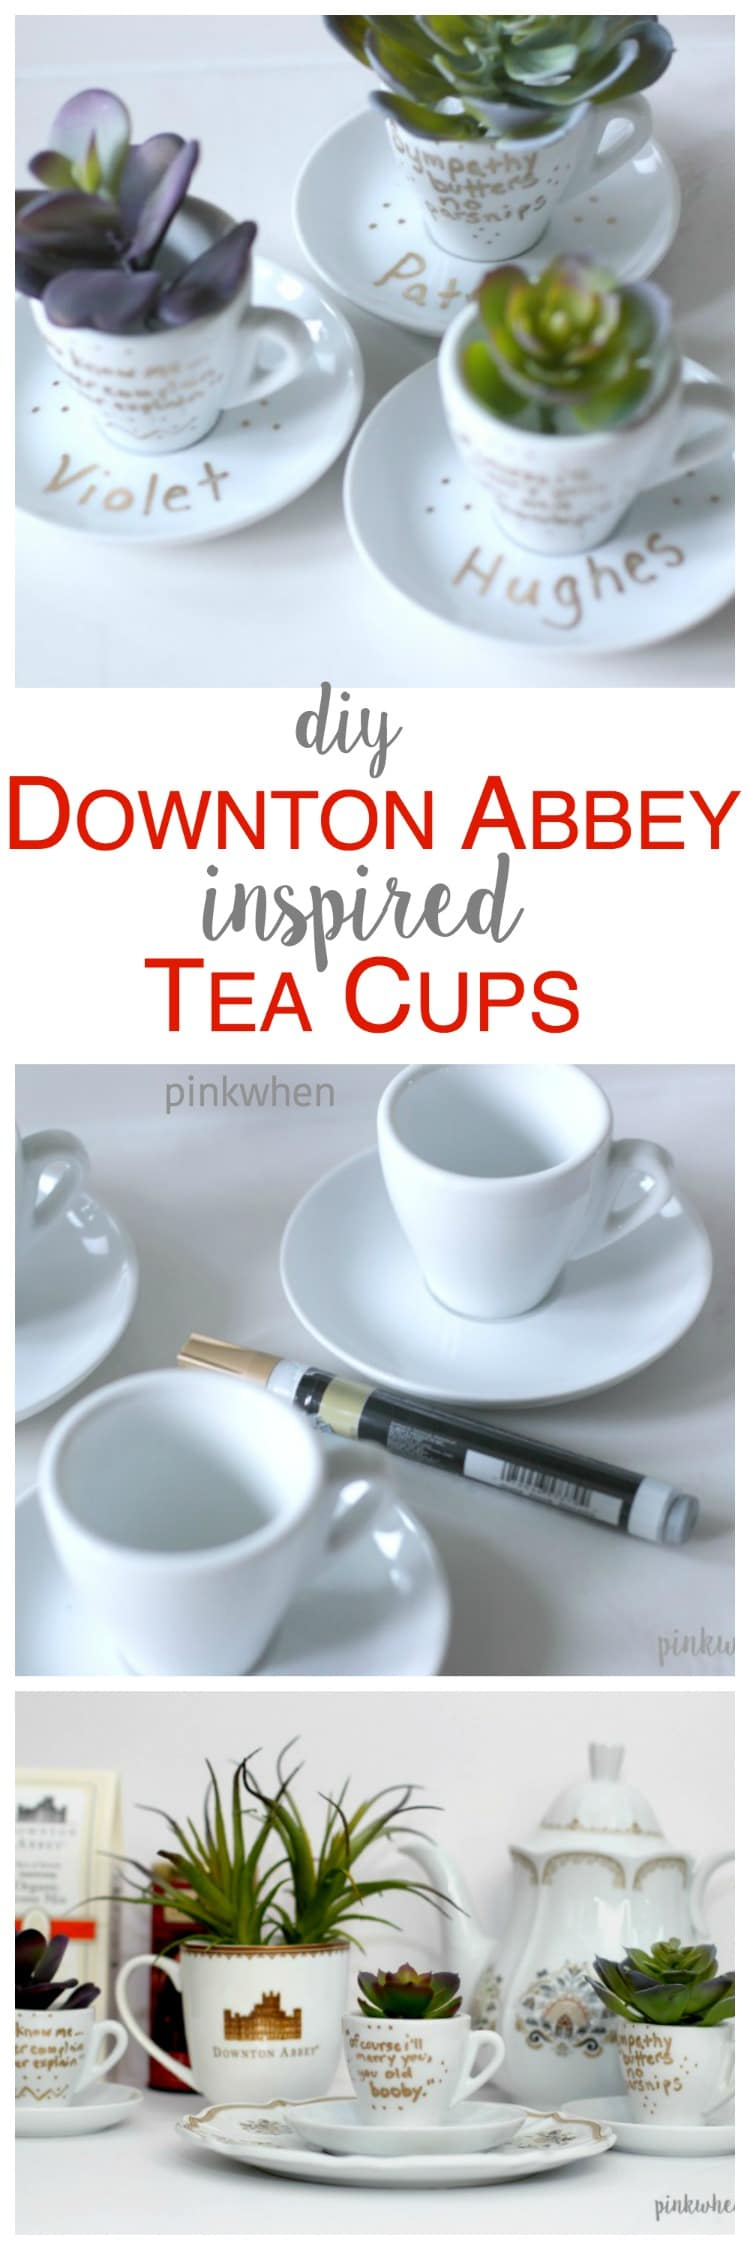 DIY Downton Abbey Teacups